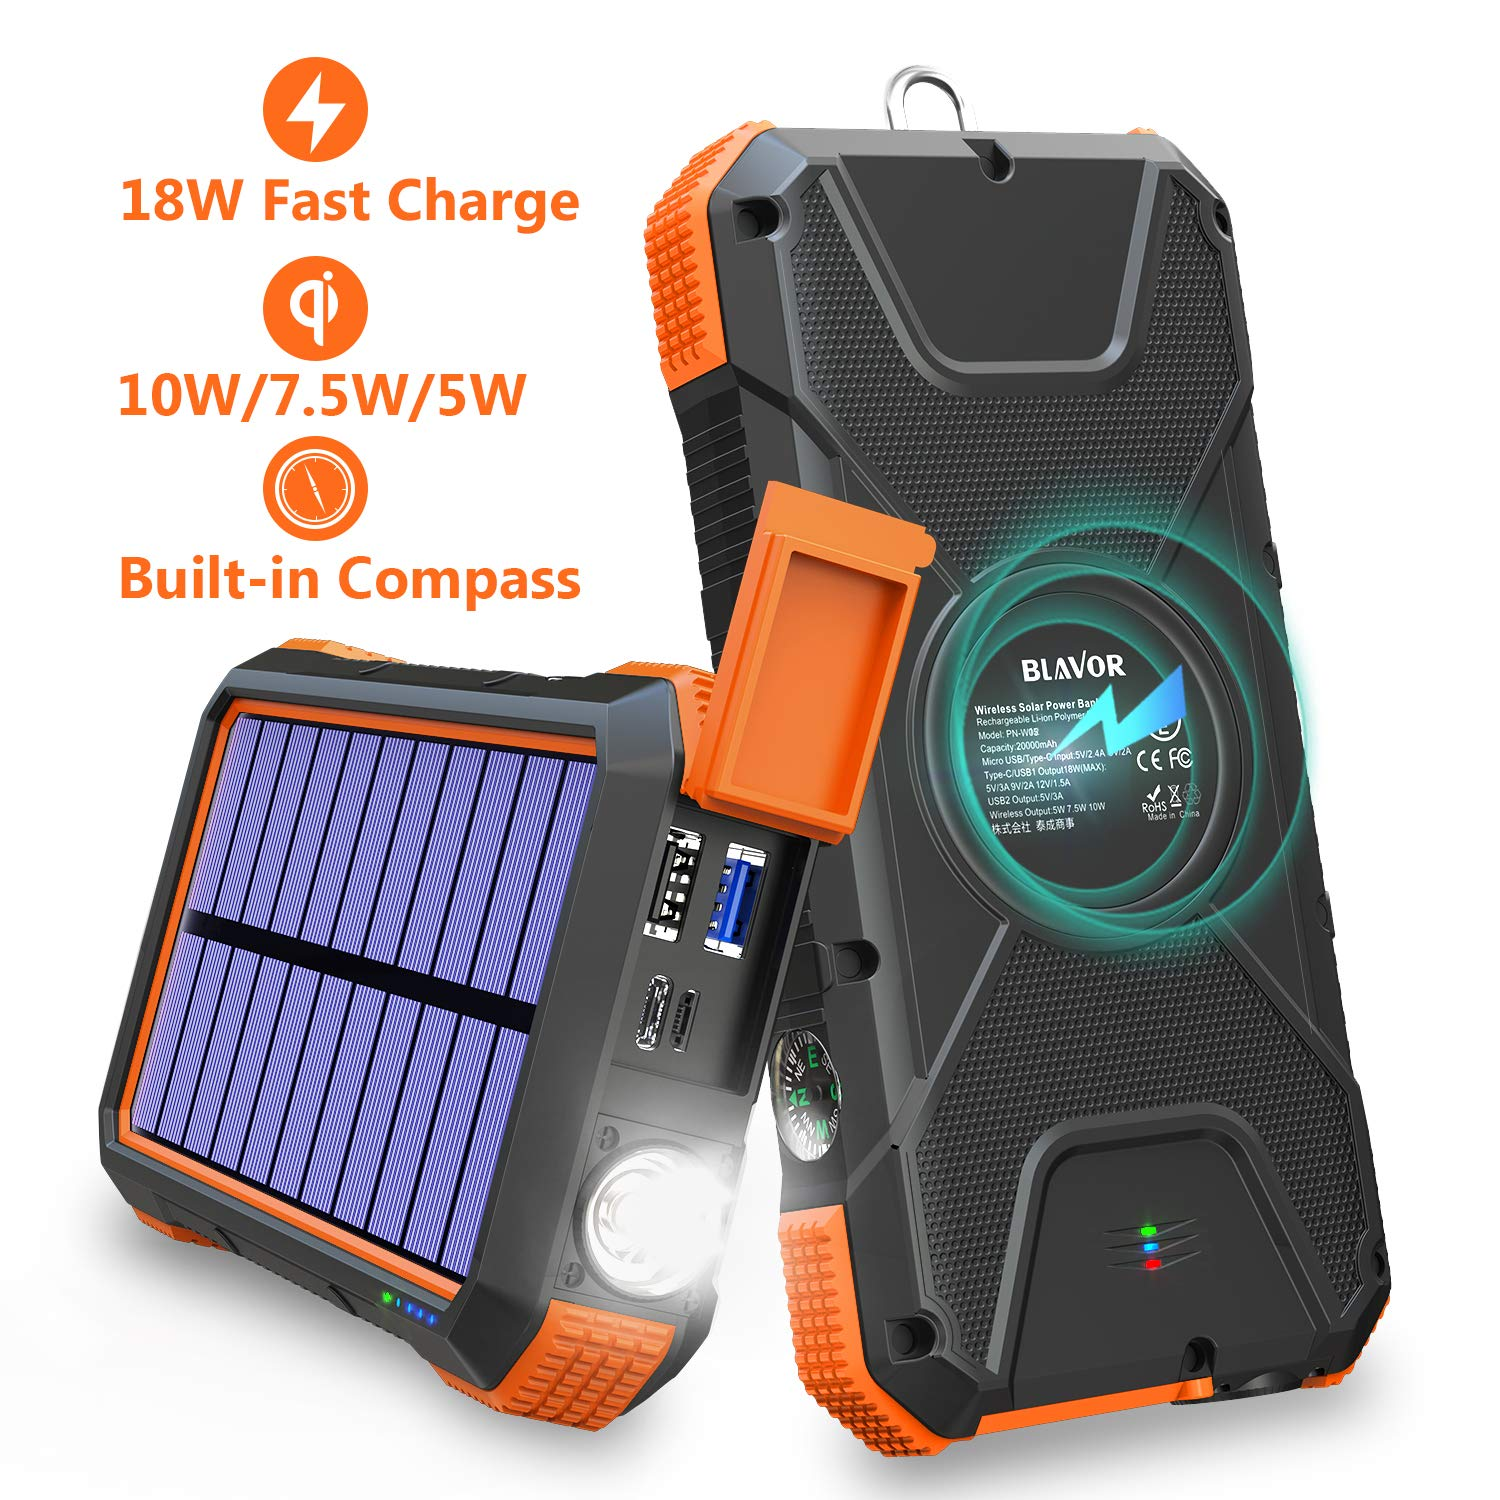 BLAVOR Solar Charger Power Bank 18W, QC 3.0 Portable Wireless Charger 10W/7.5W/5W with 4 Outputs & Dual Inputs, 20000mAh External Battery Pack IPX5 Waterproof with Flashlight & Compass (Orange) by BLAVOR